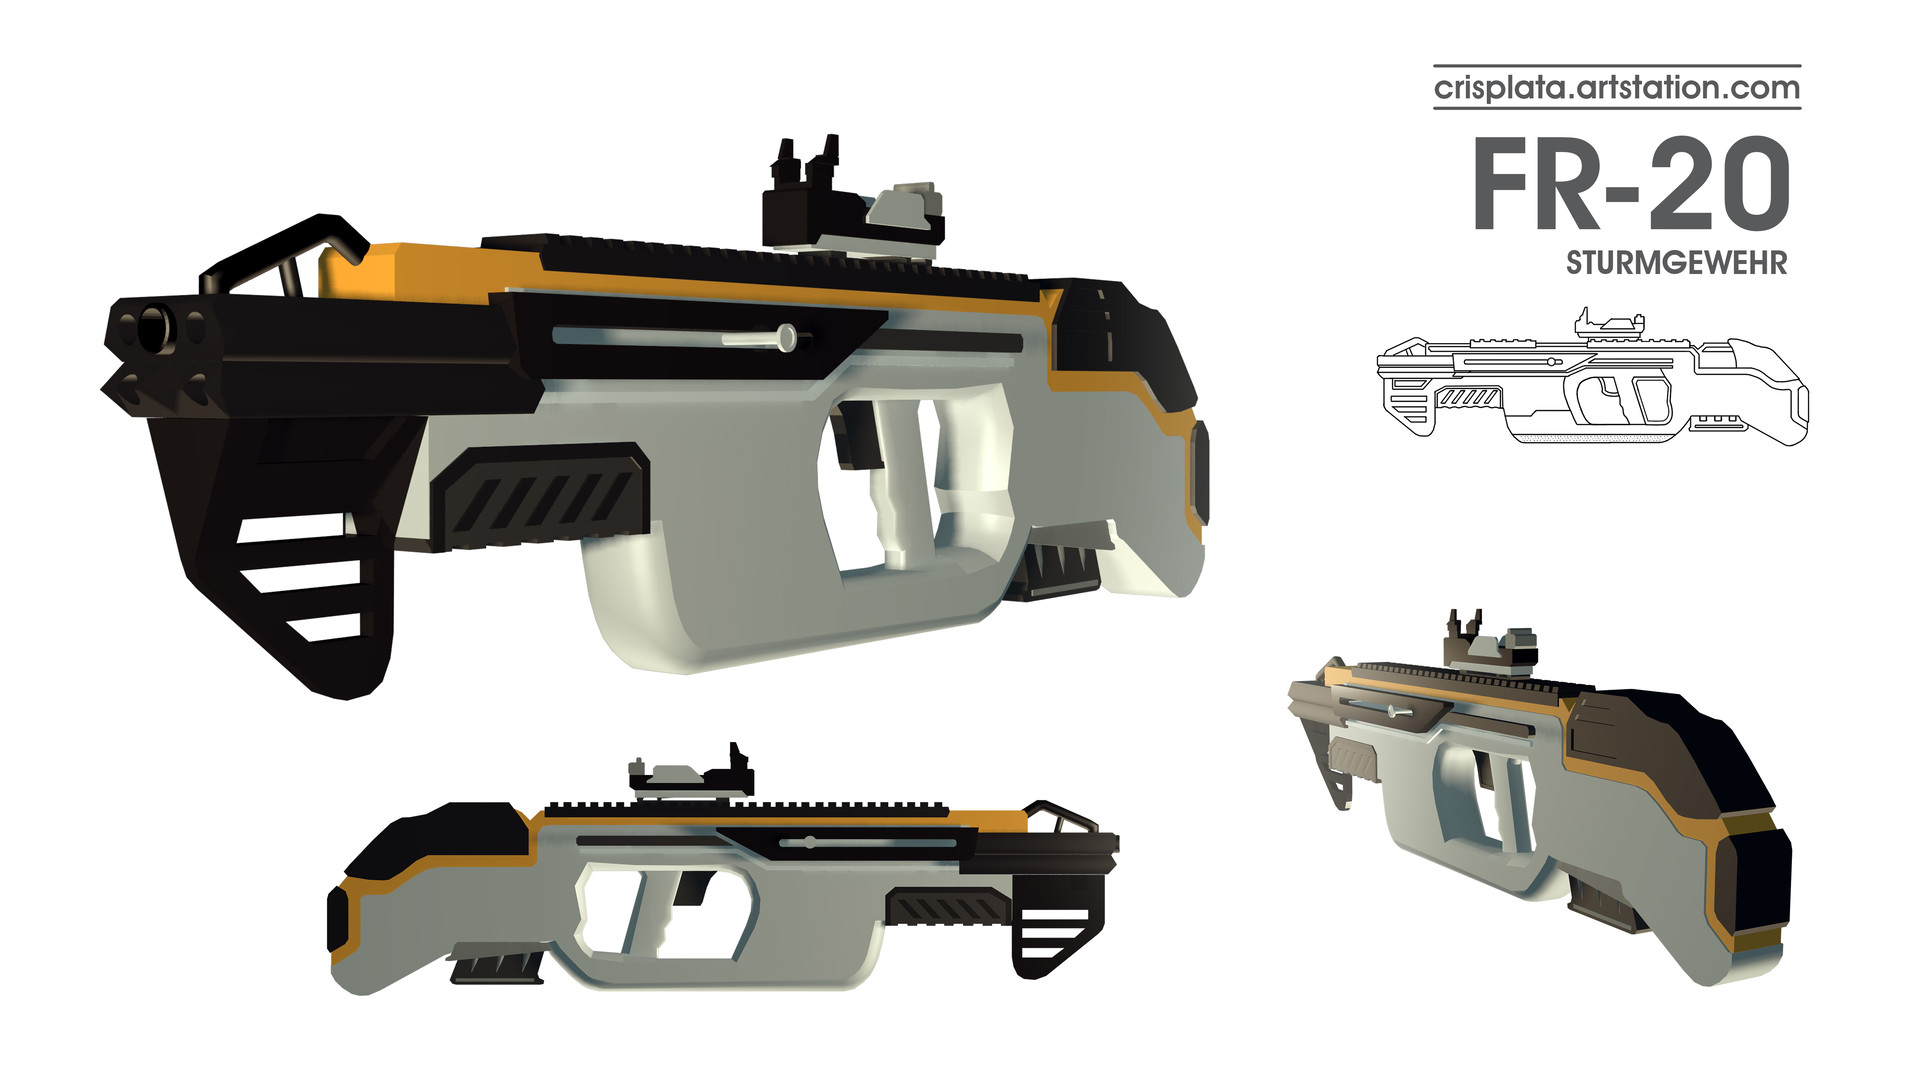 FR-20 Assaullt Rifle